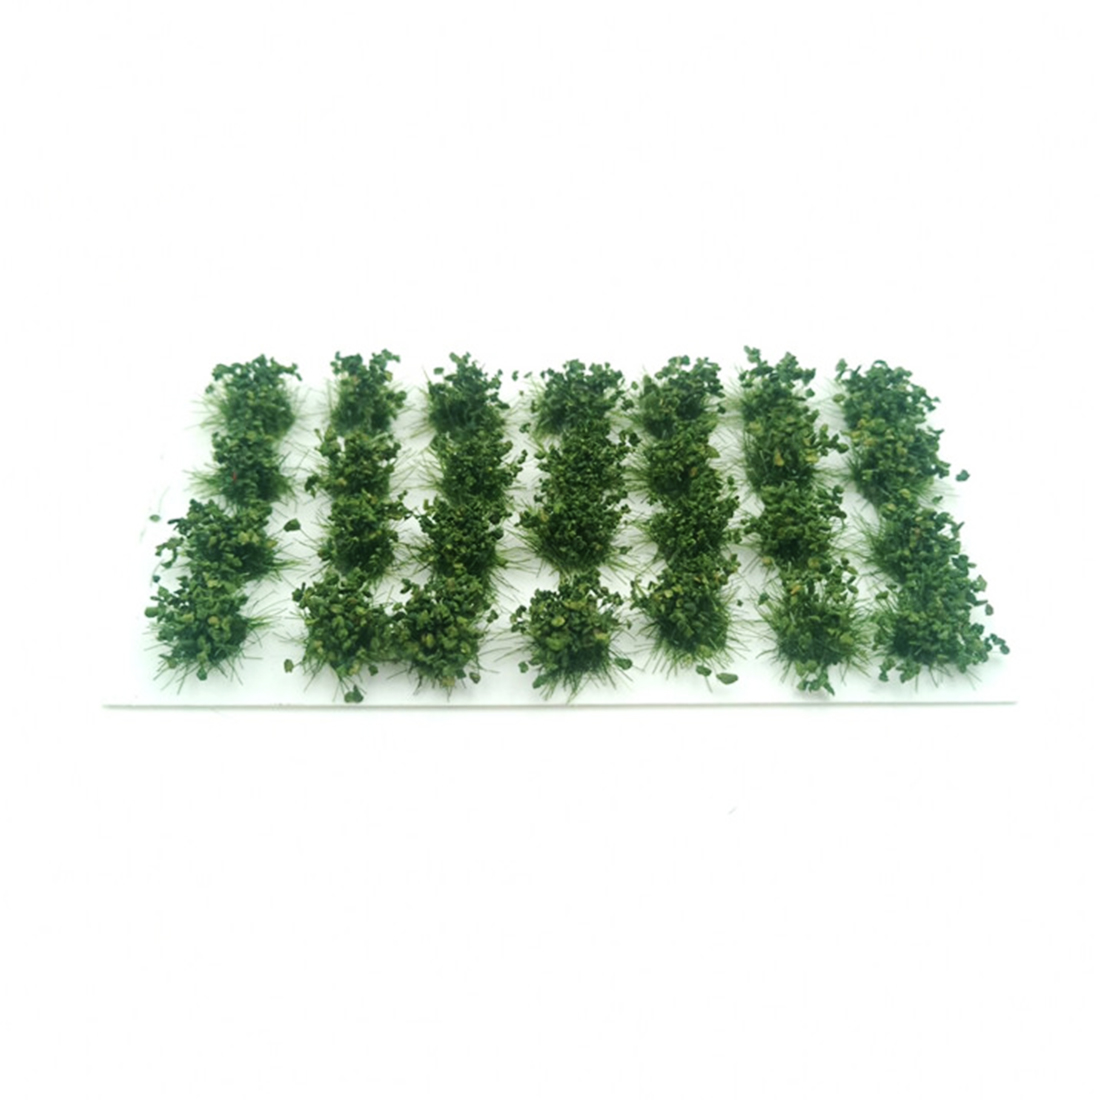 28Pcs/Set Simulated Bush Landscape Miniature Model Scene For 1:35/1:48/1:72/1:87 Scale Sand Table Miniatures Landscape - Green